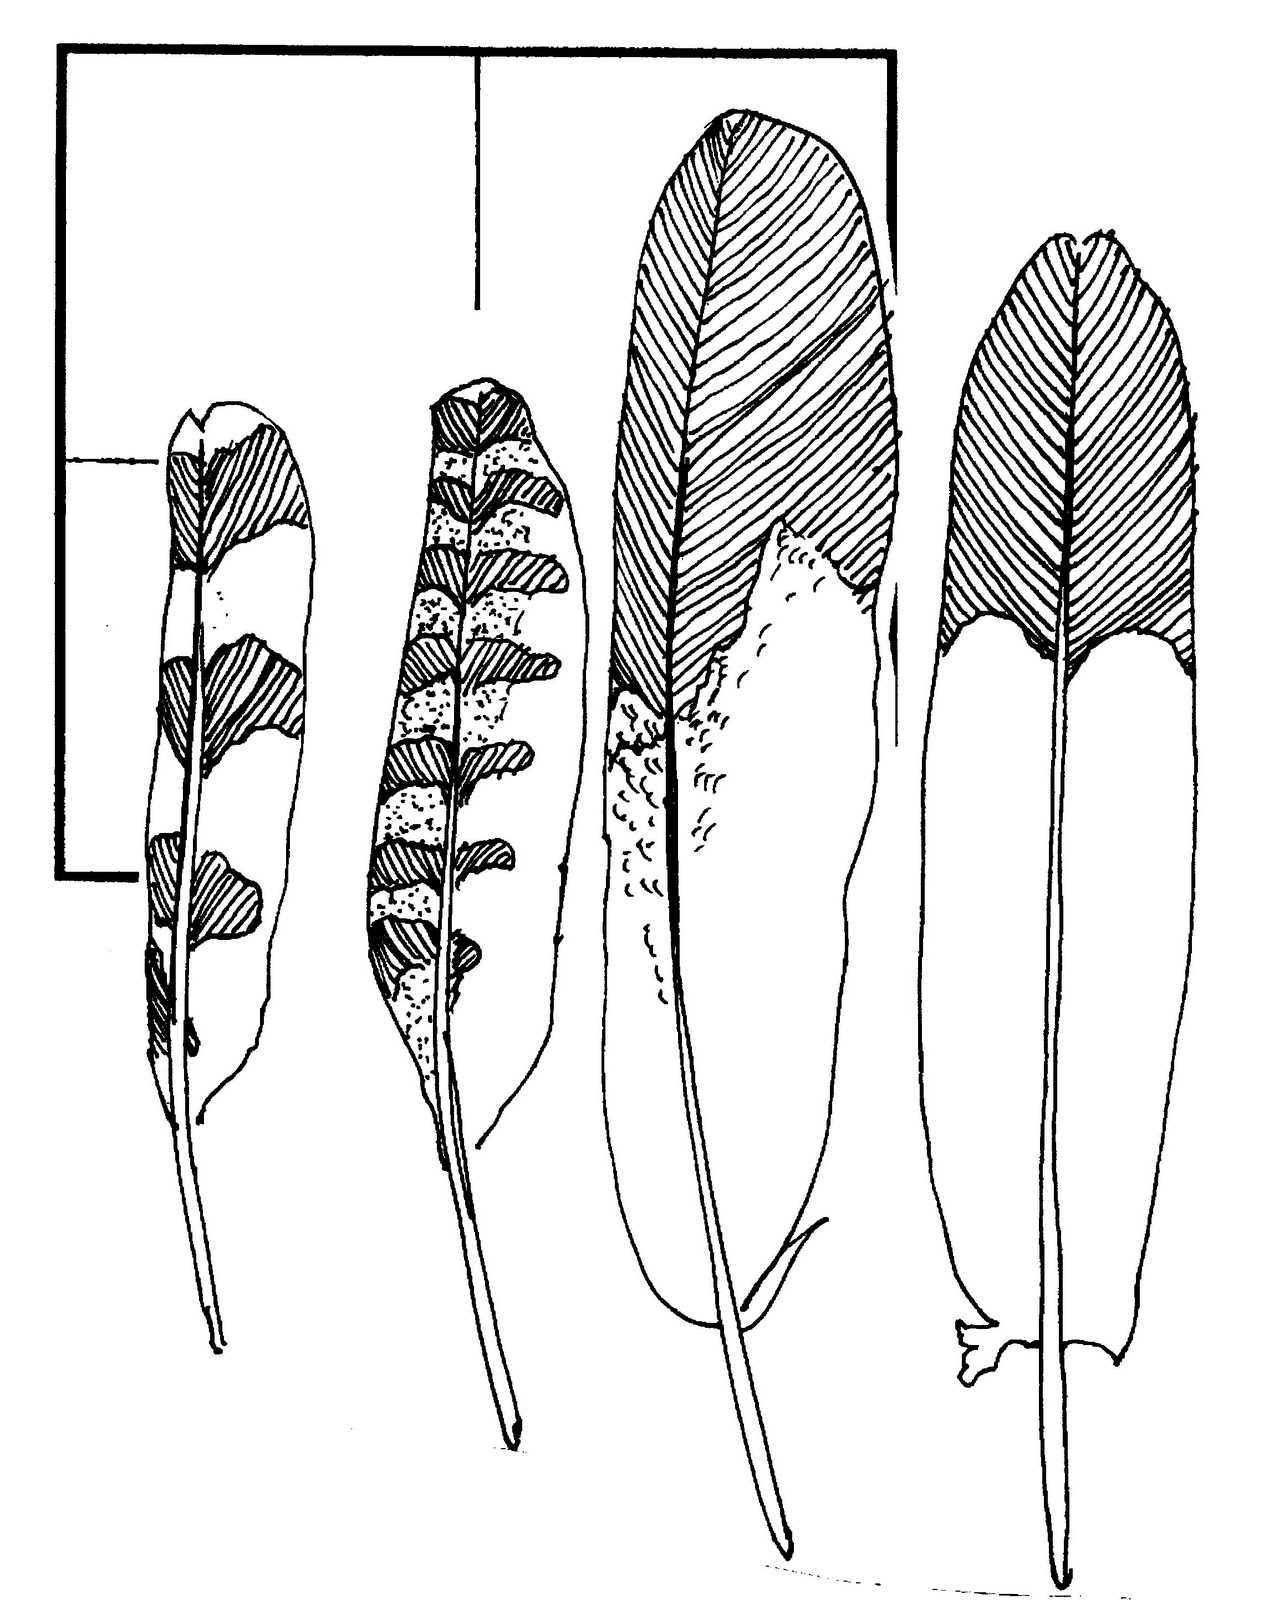 Eagle Feathers Drawings To Feathers For My #QoVbHD